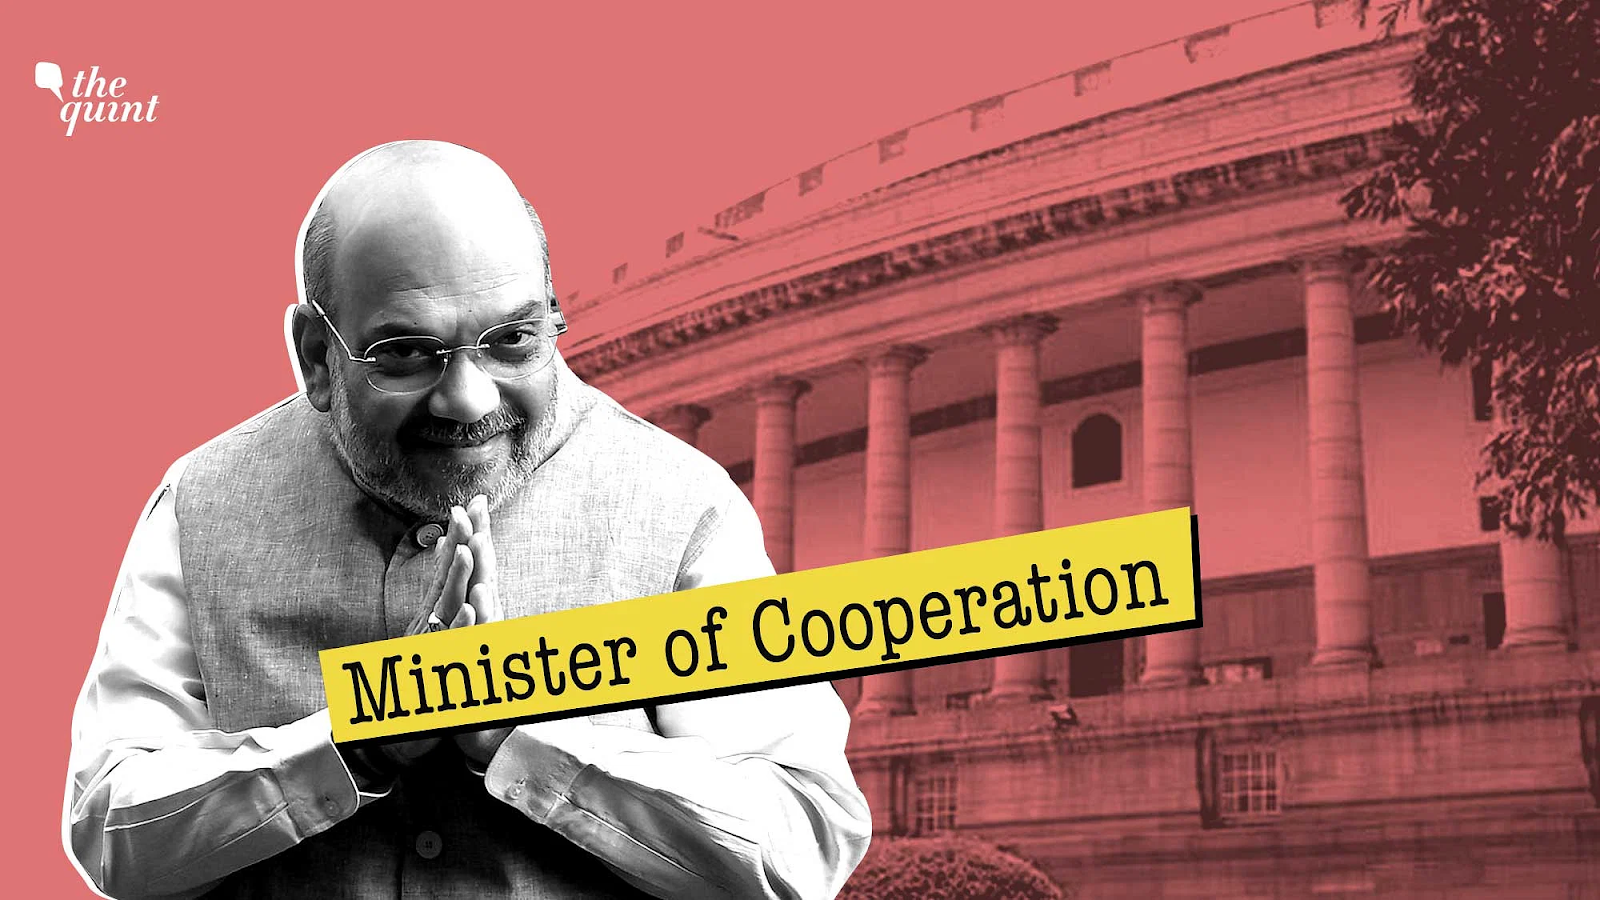 cooperation-ministry-will-usurp-states-rights-oppn